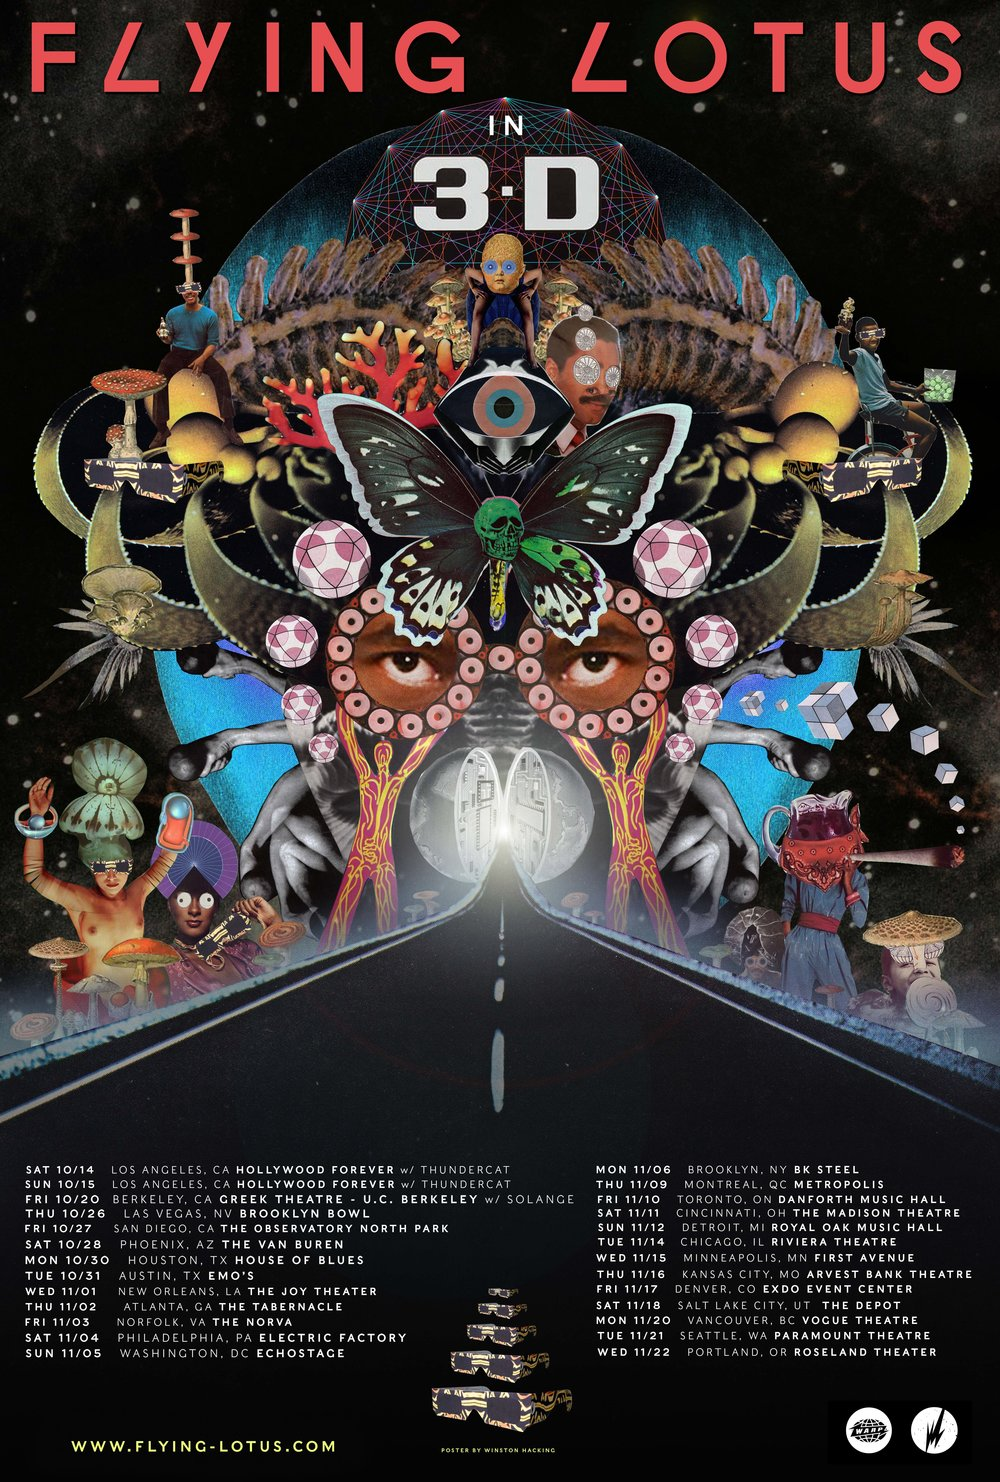 FLYING LOTUS TOUR POSTER